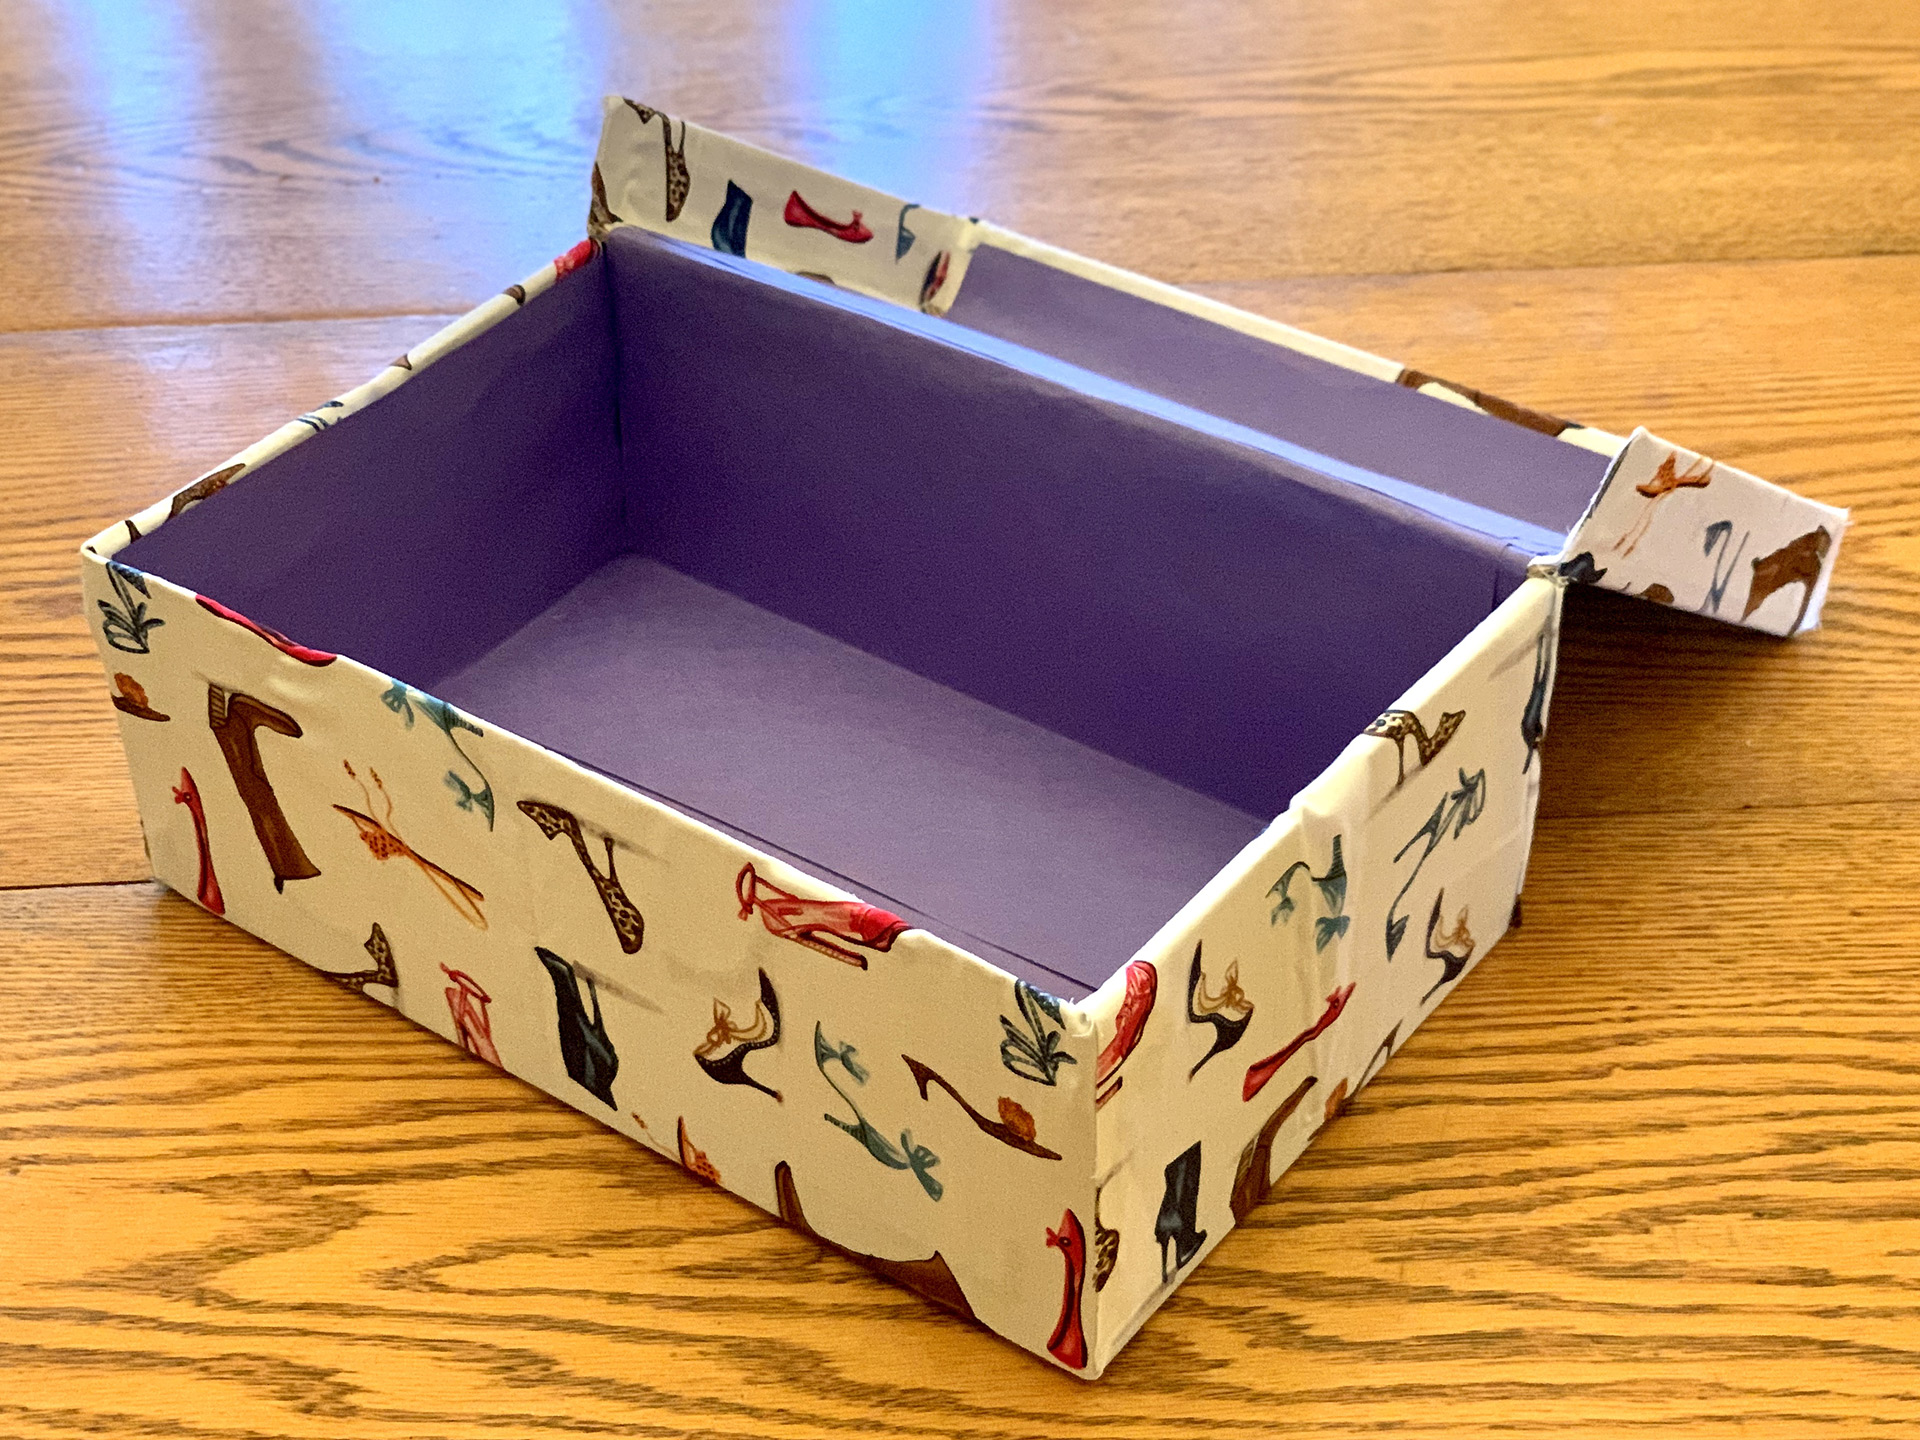 photo of the box with the lid open